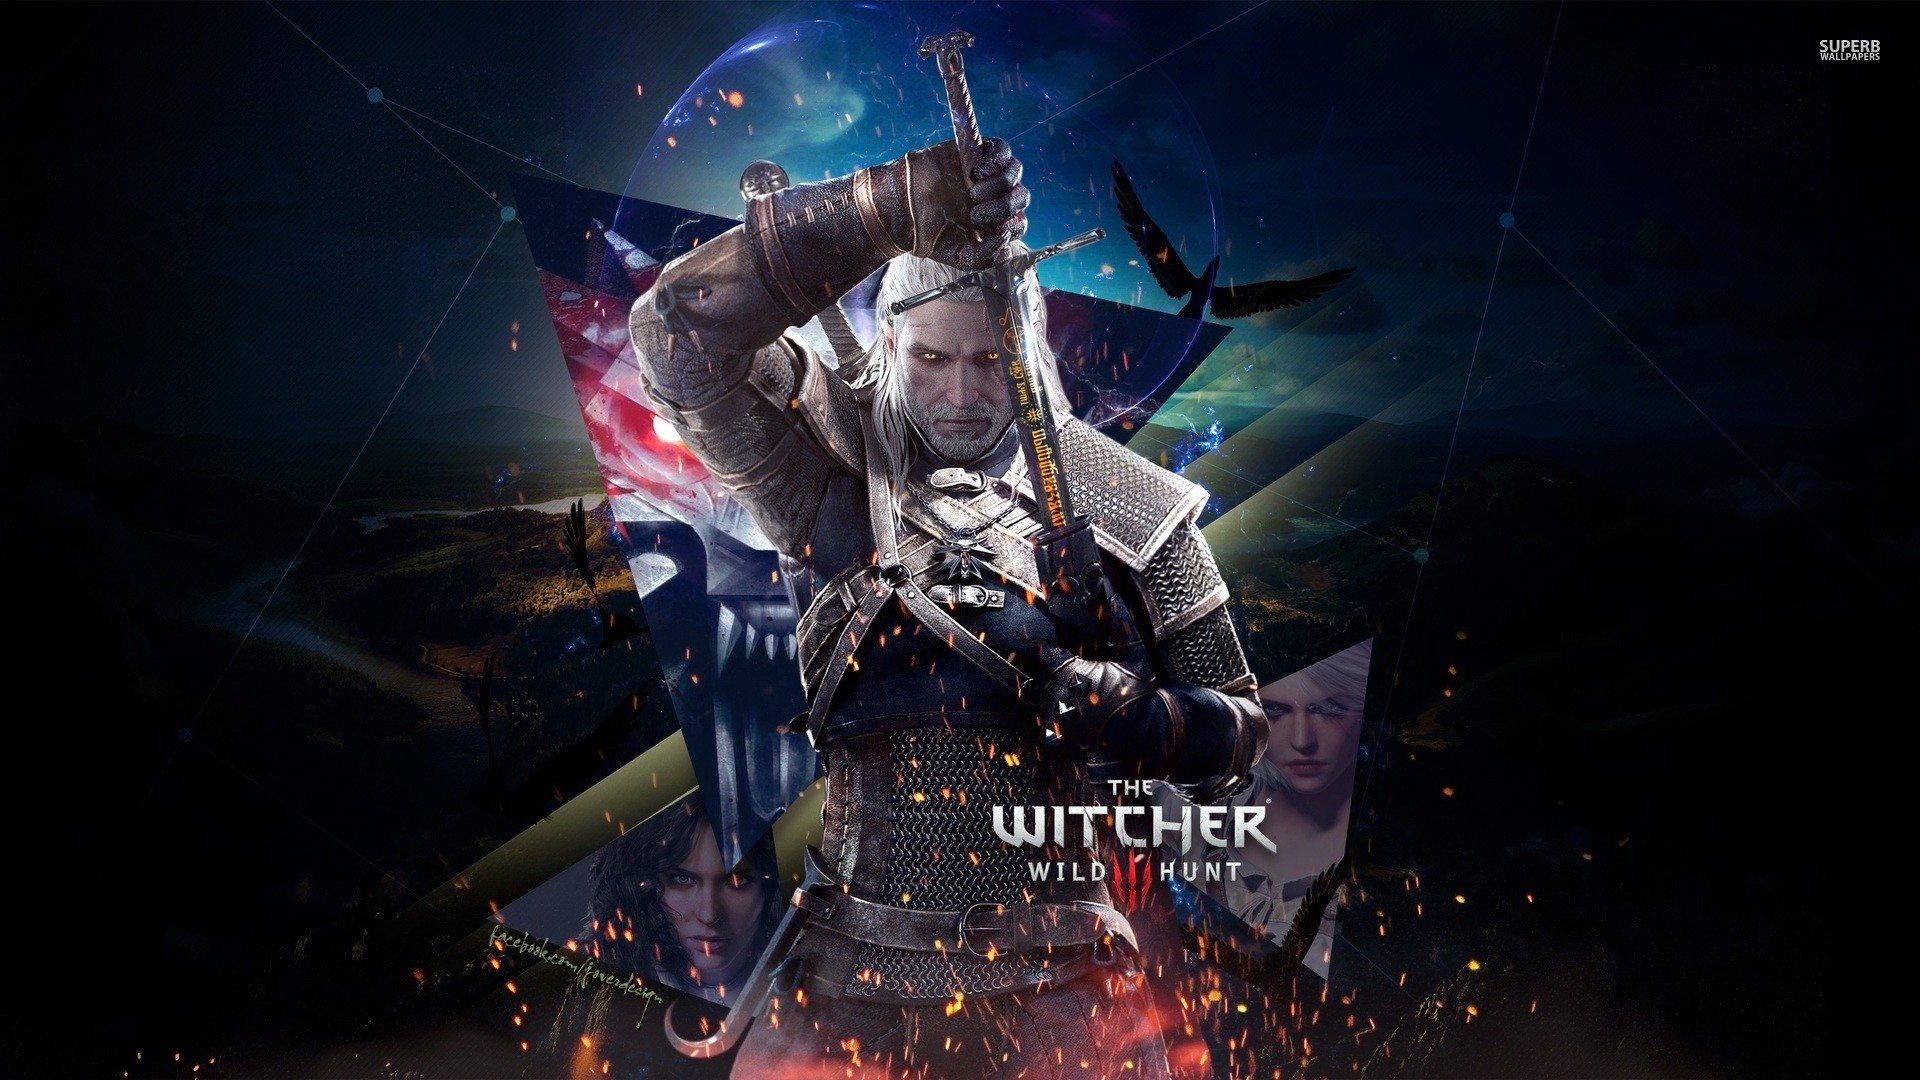 Iphone 7 Plus Live Wallpaper Witcher 3 Iphone Wallpaper 76 Images